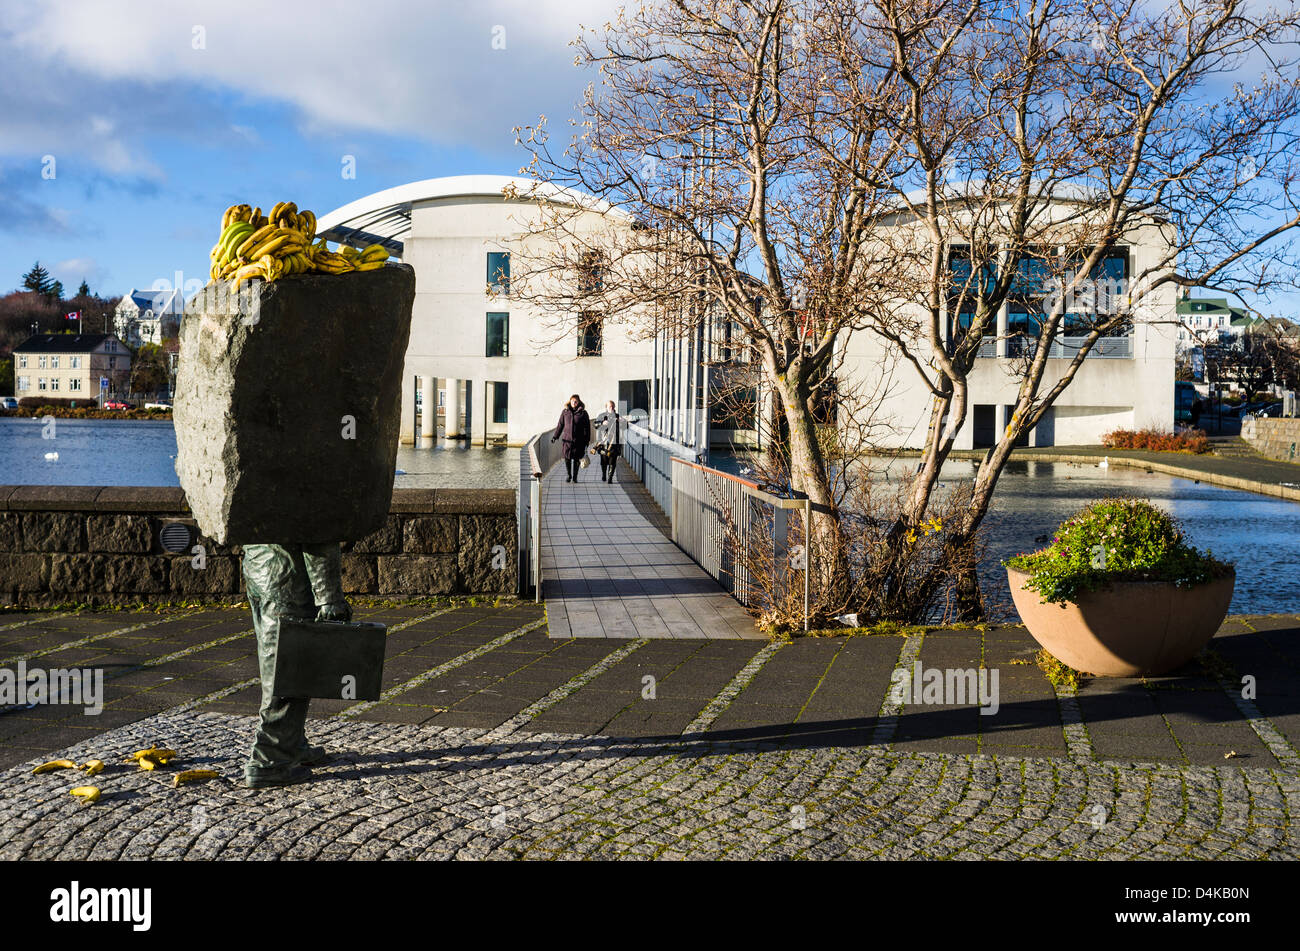 A statue by Magnús Tómasson located by Reykjavik City Hall with its head covered for some obscure reason - Stock Image